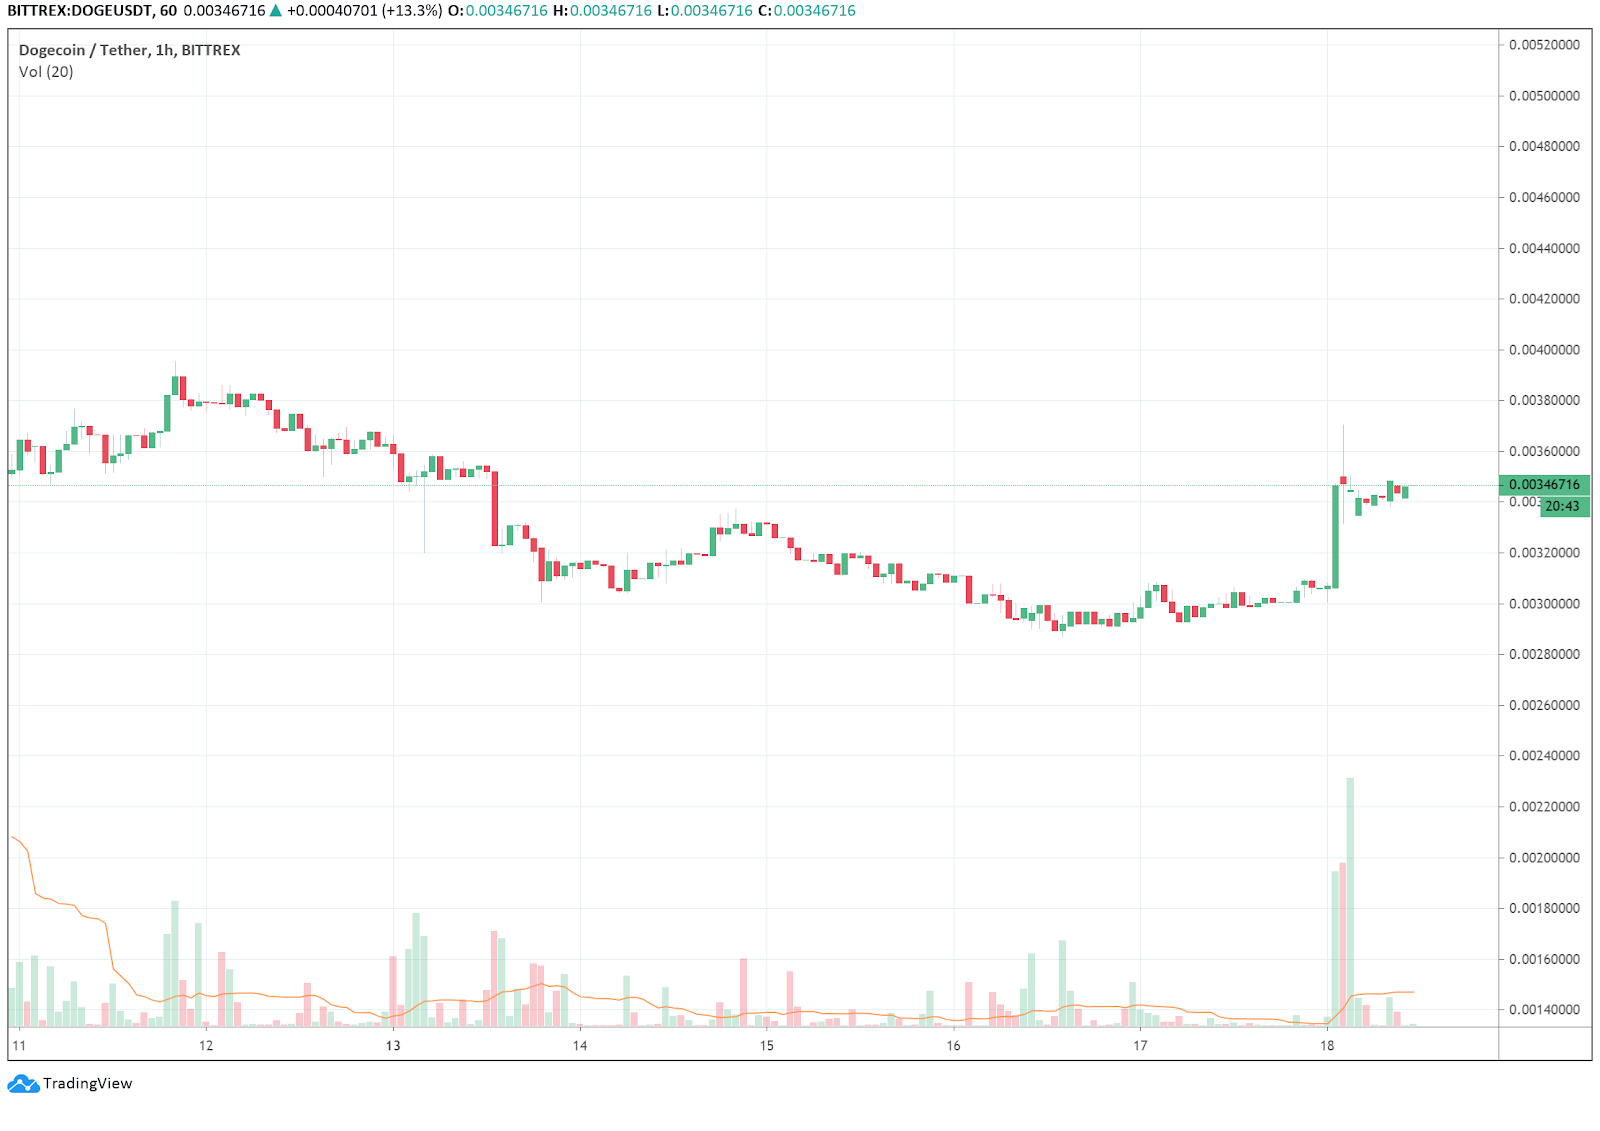 The price of DOGE rose by 14% on the day